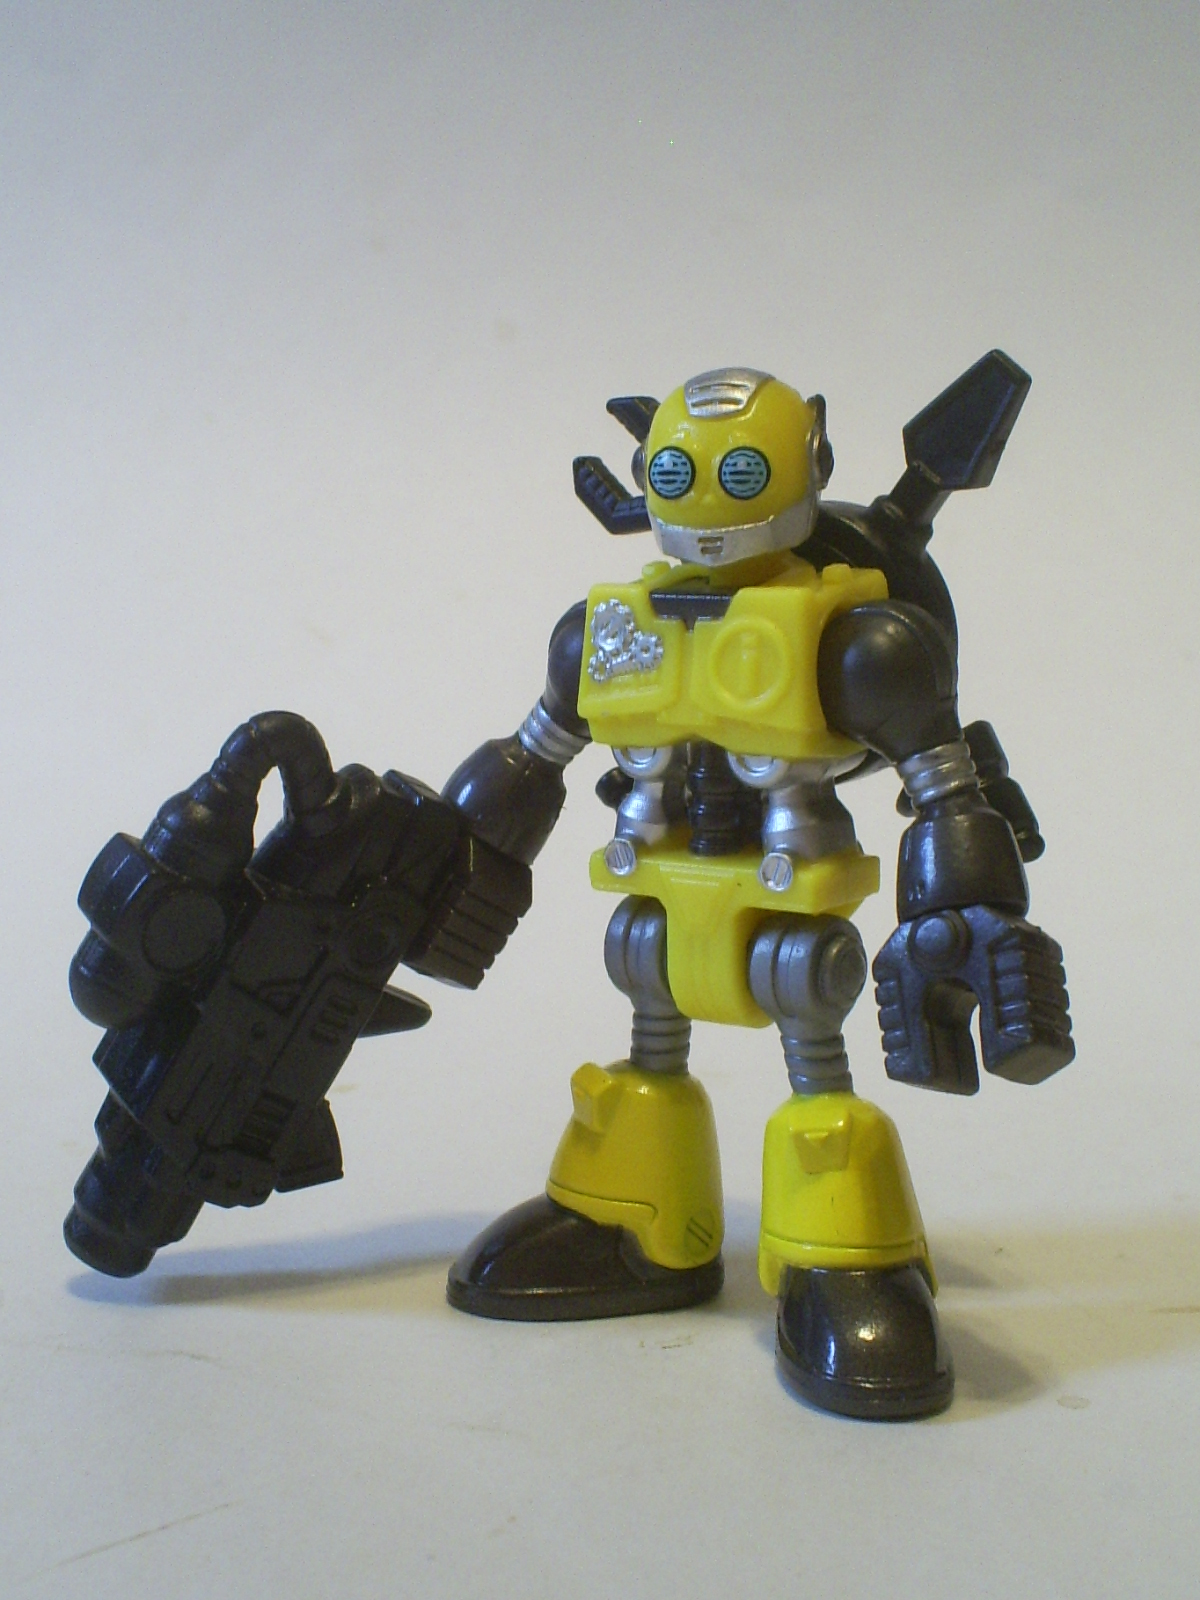 That Figures Review Imaginext Collectible Figures The